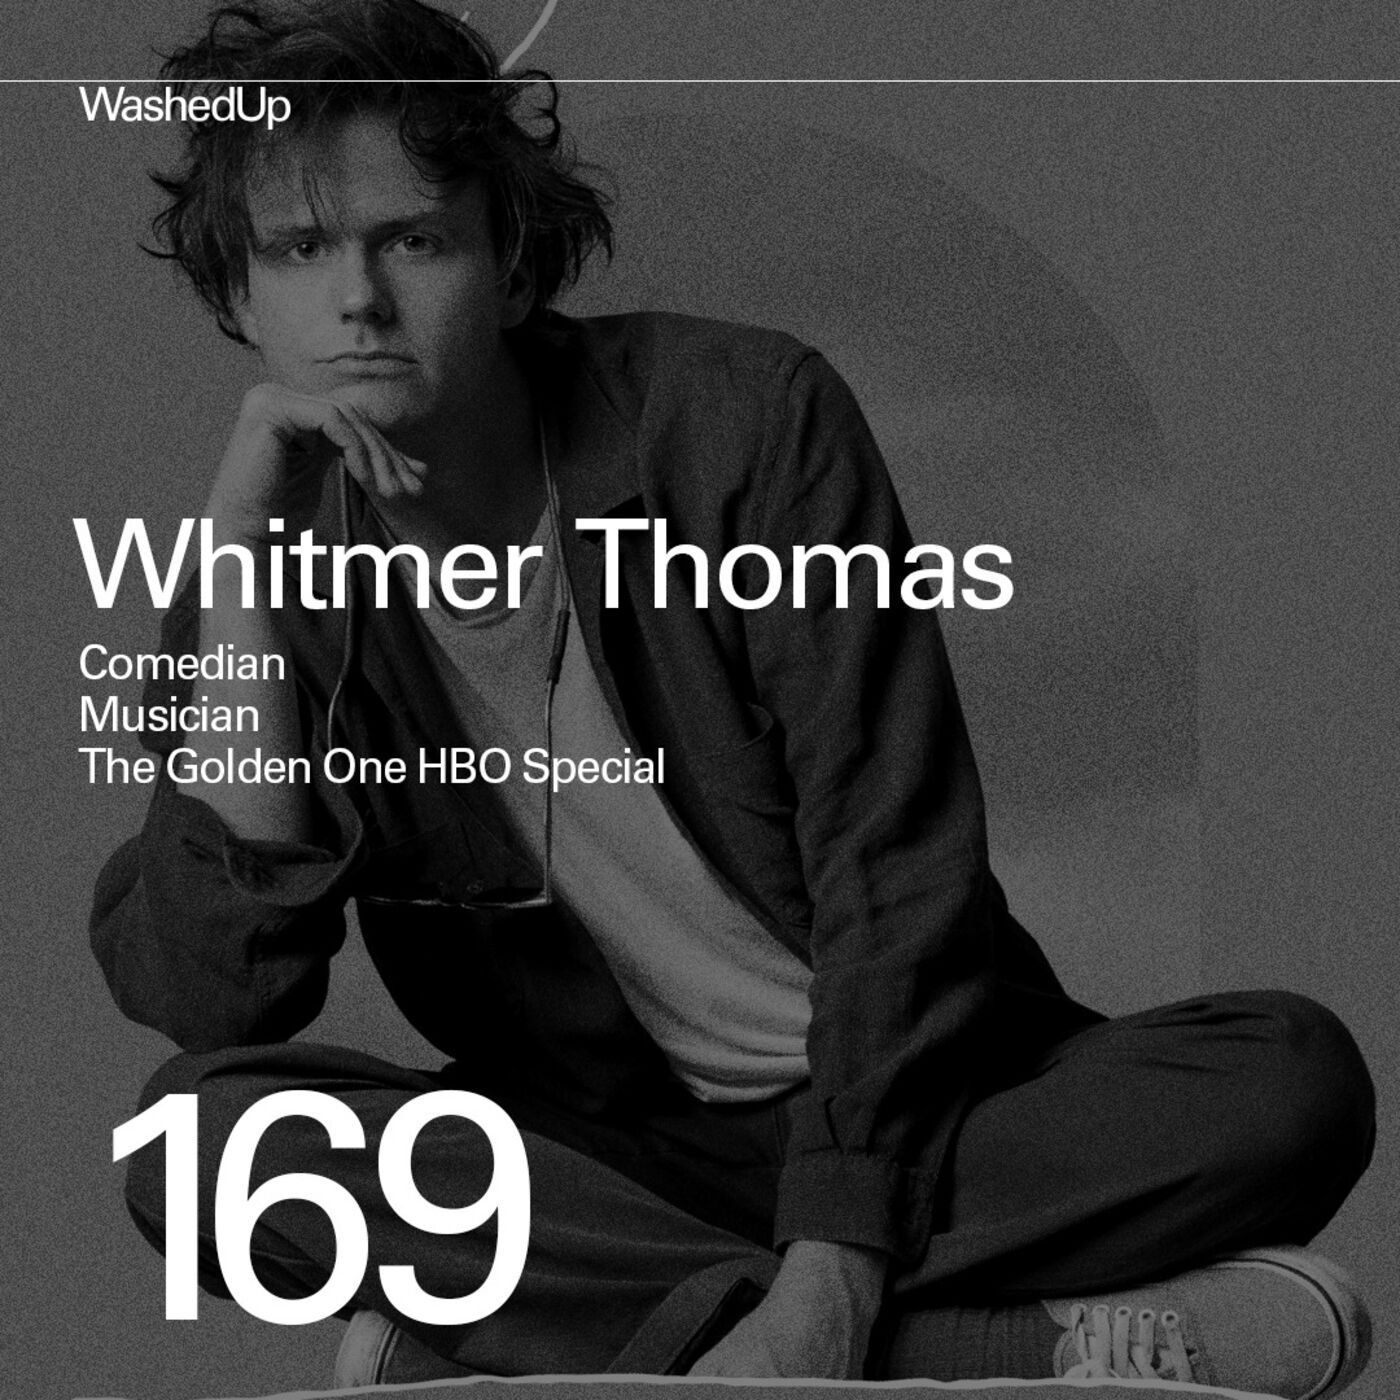 #169 - Whitmer Thomas (Comedian, Musician, The Golden One HBO Special)